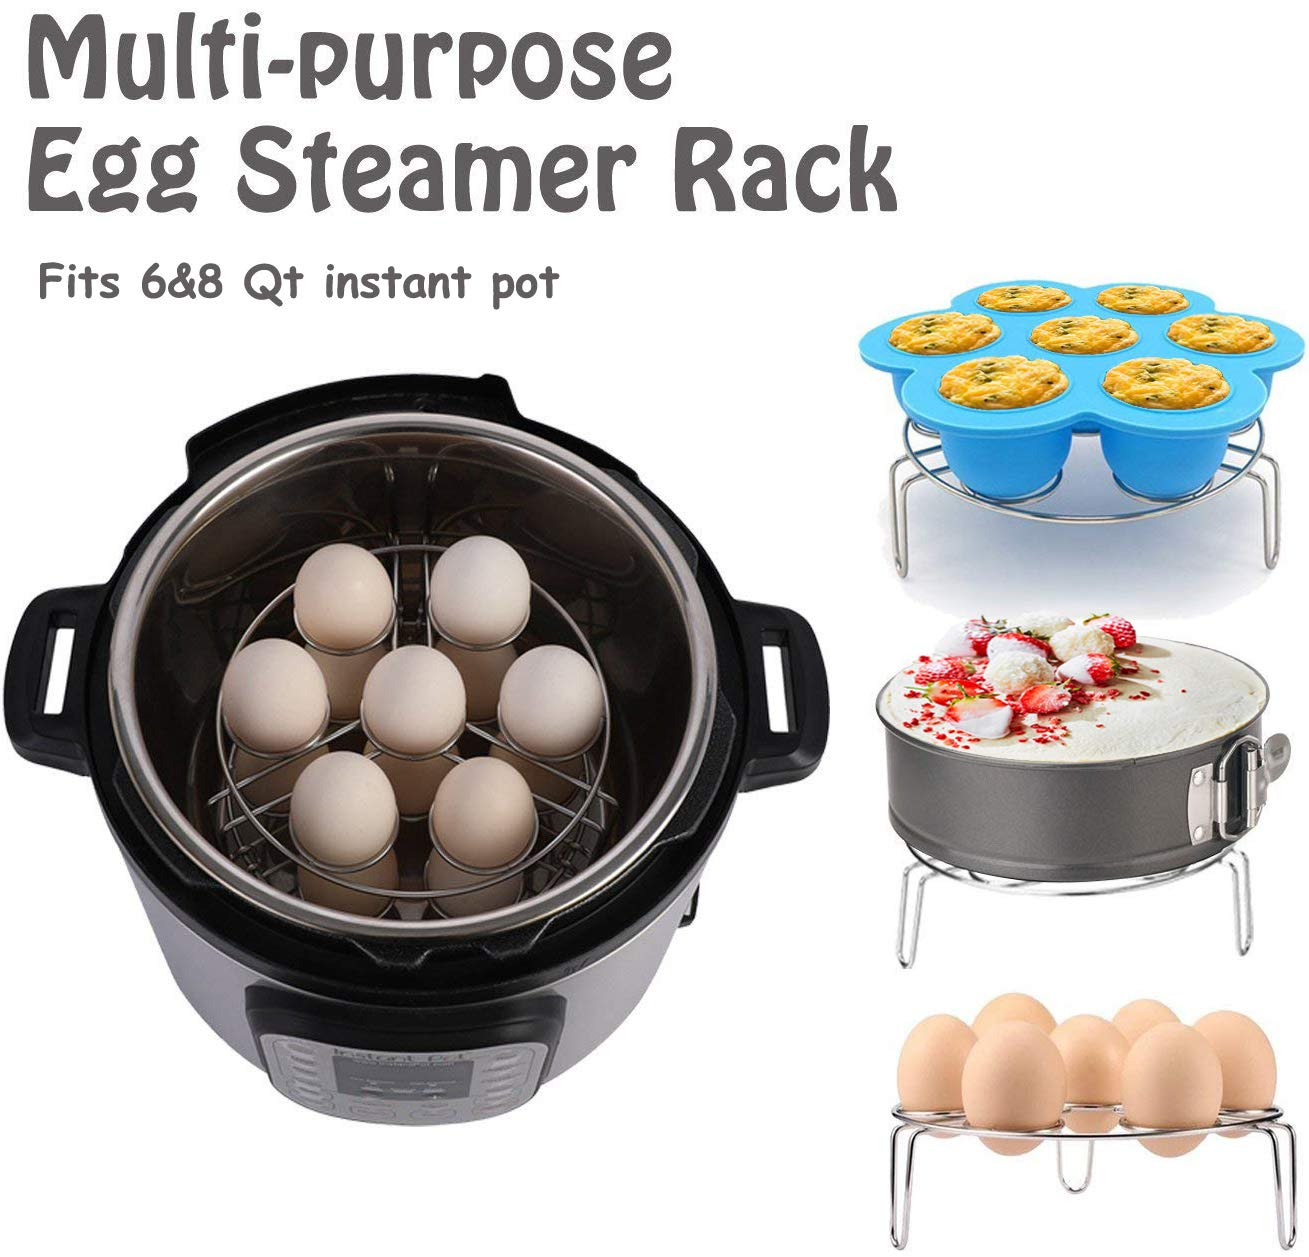 AMEON Accessories for Instant Pot 6, 8 Quart - Steamer Basket, Egg Rack, Springform Pan, Egg Bites Mold, Egg Beater, Pot Mitts, Silicone Mat and Food Tong for Insta Pot, Pressure Cooker, Rice Cooker by AMEON (Image #6)